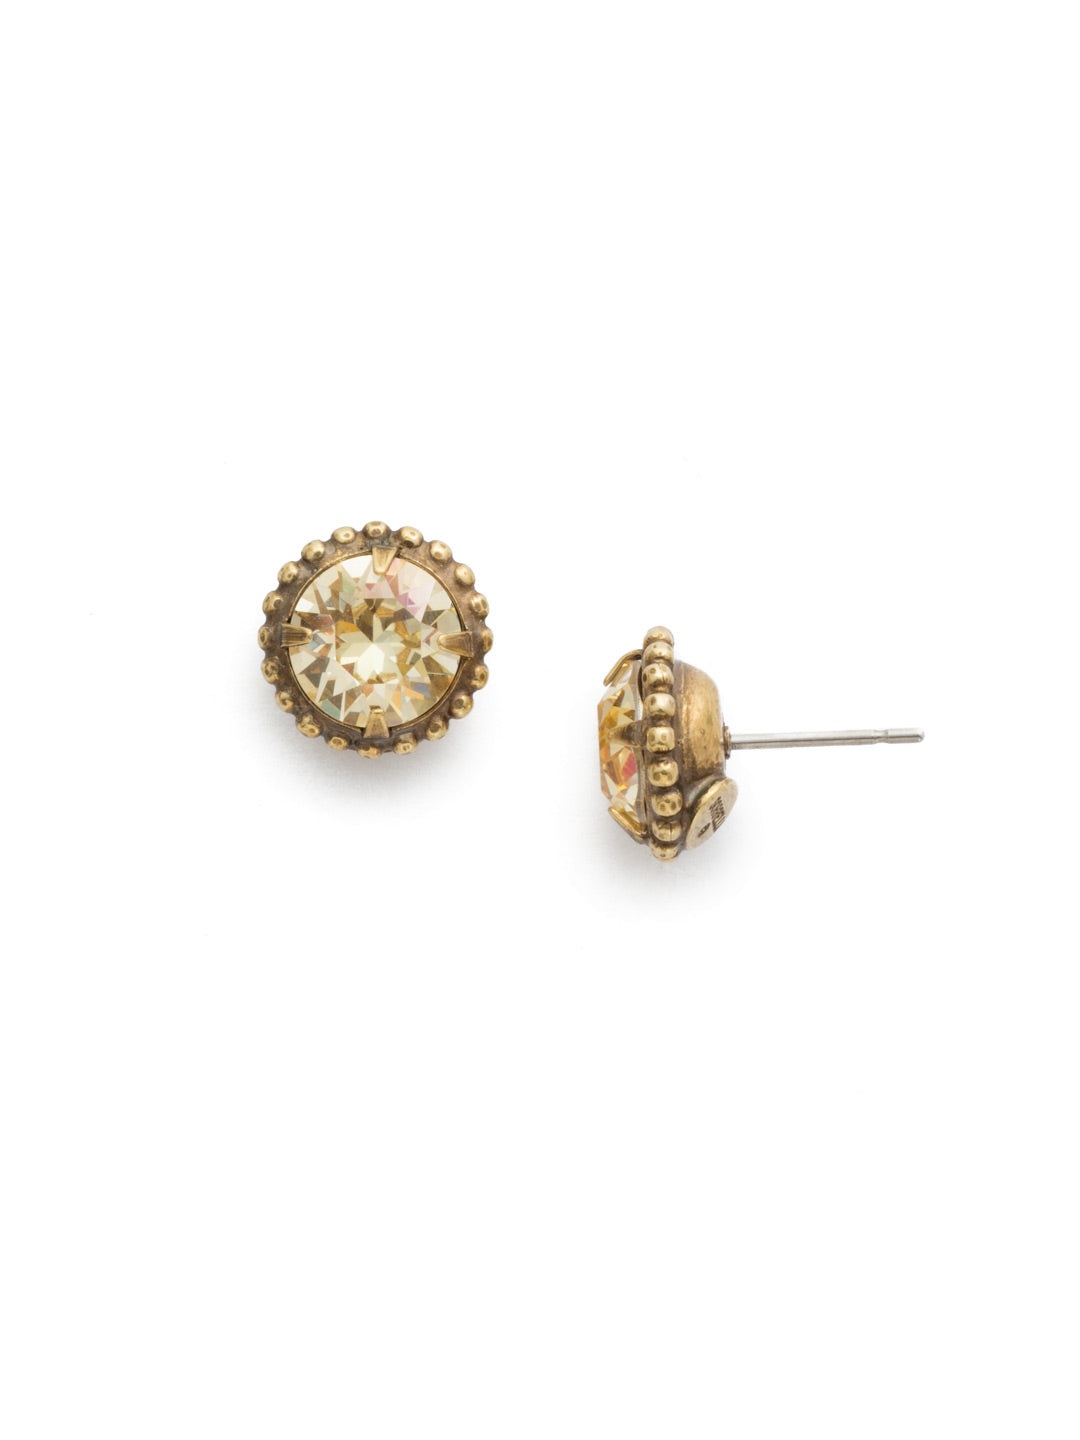 Simplicity Stud Earrings - EBY38AGCCH